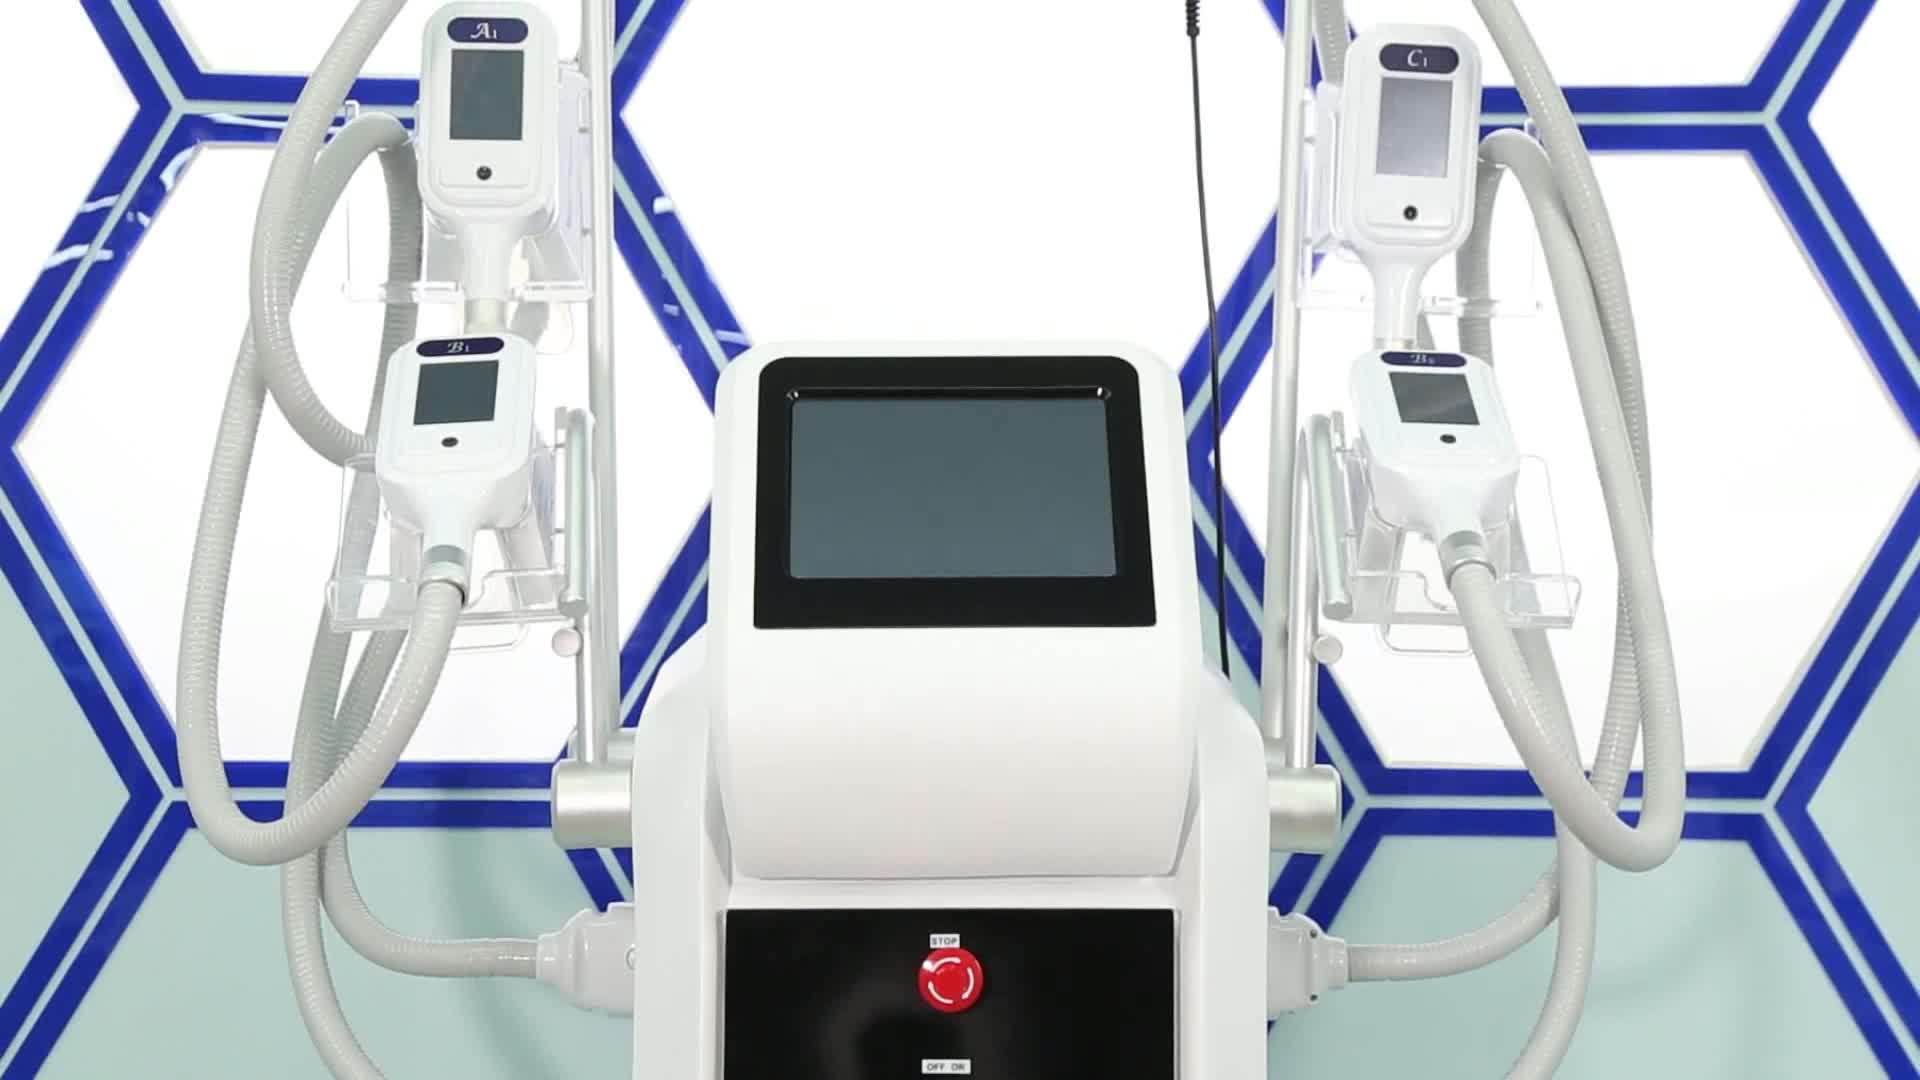 beauty machine cryolipolyse 4 cryo handles cryolipolysis device for salon use